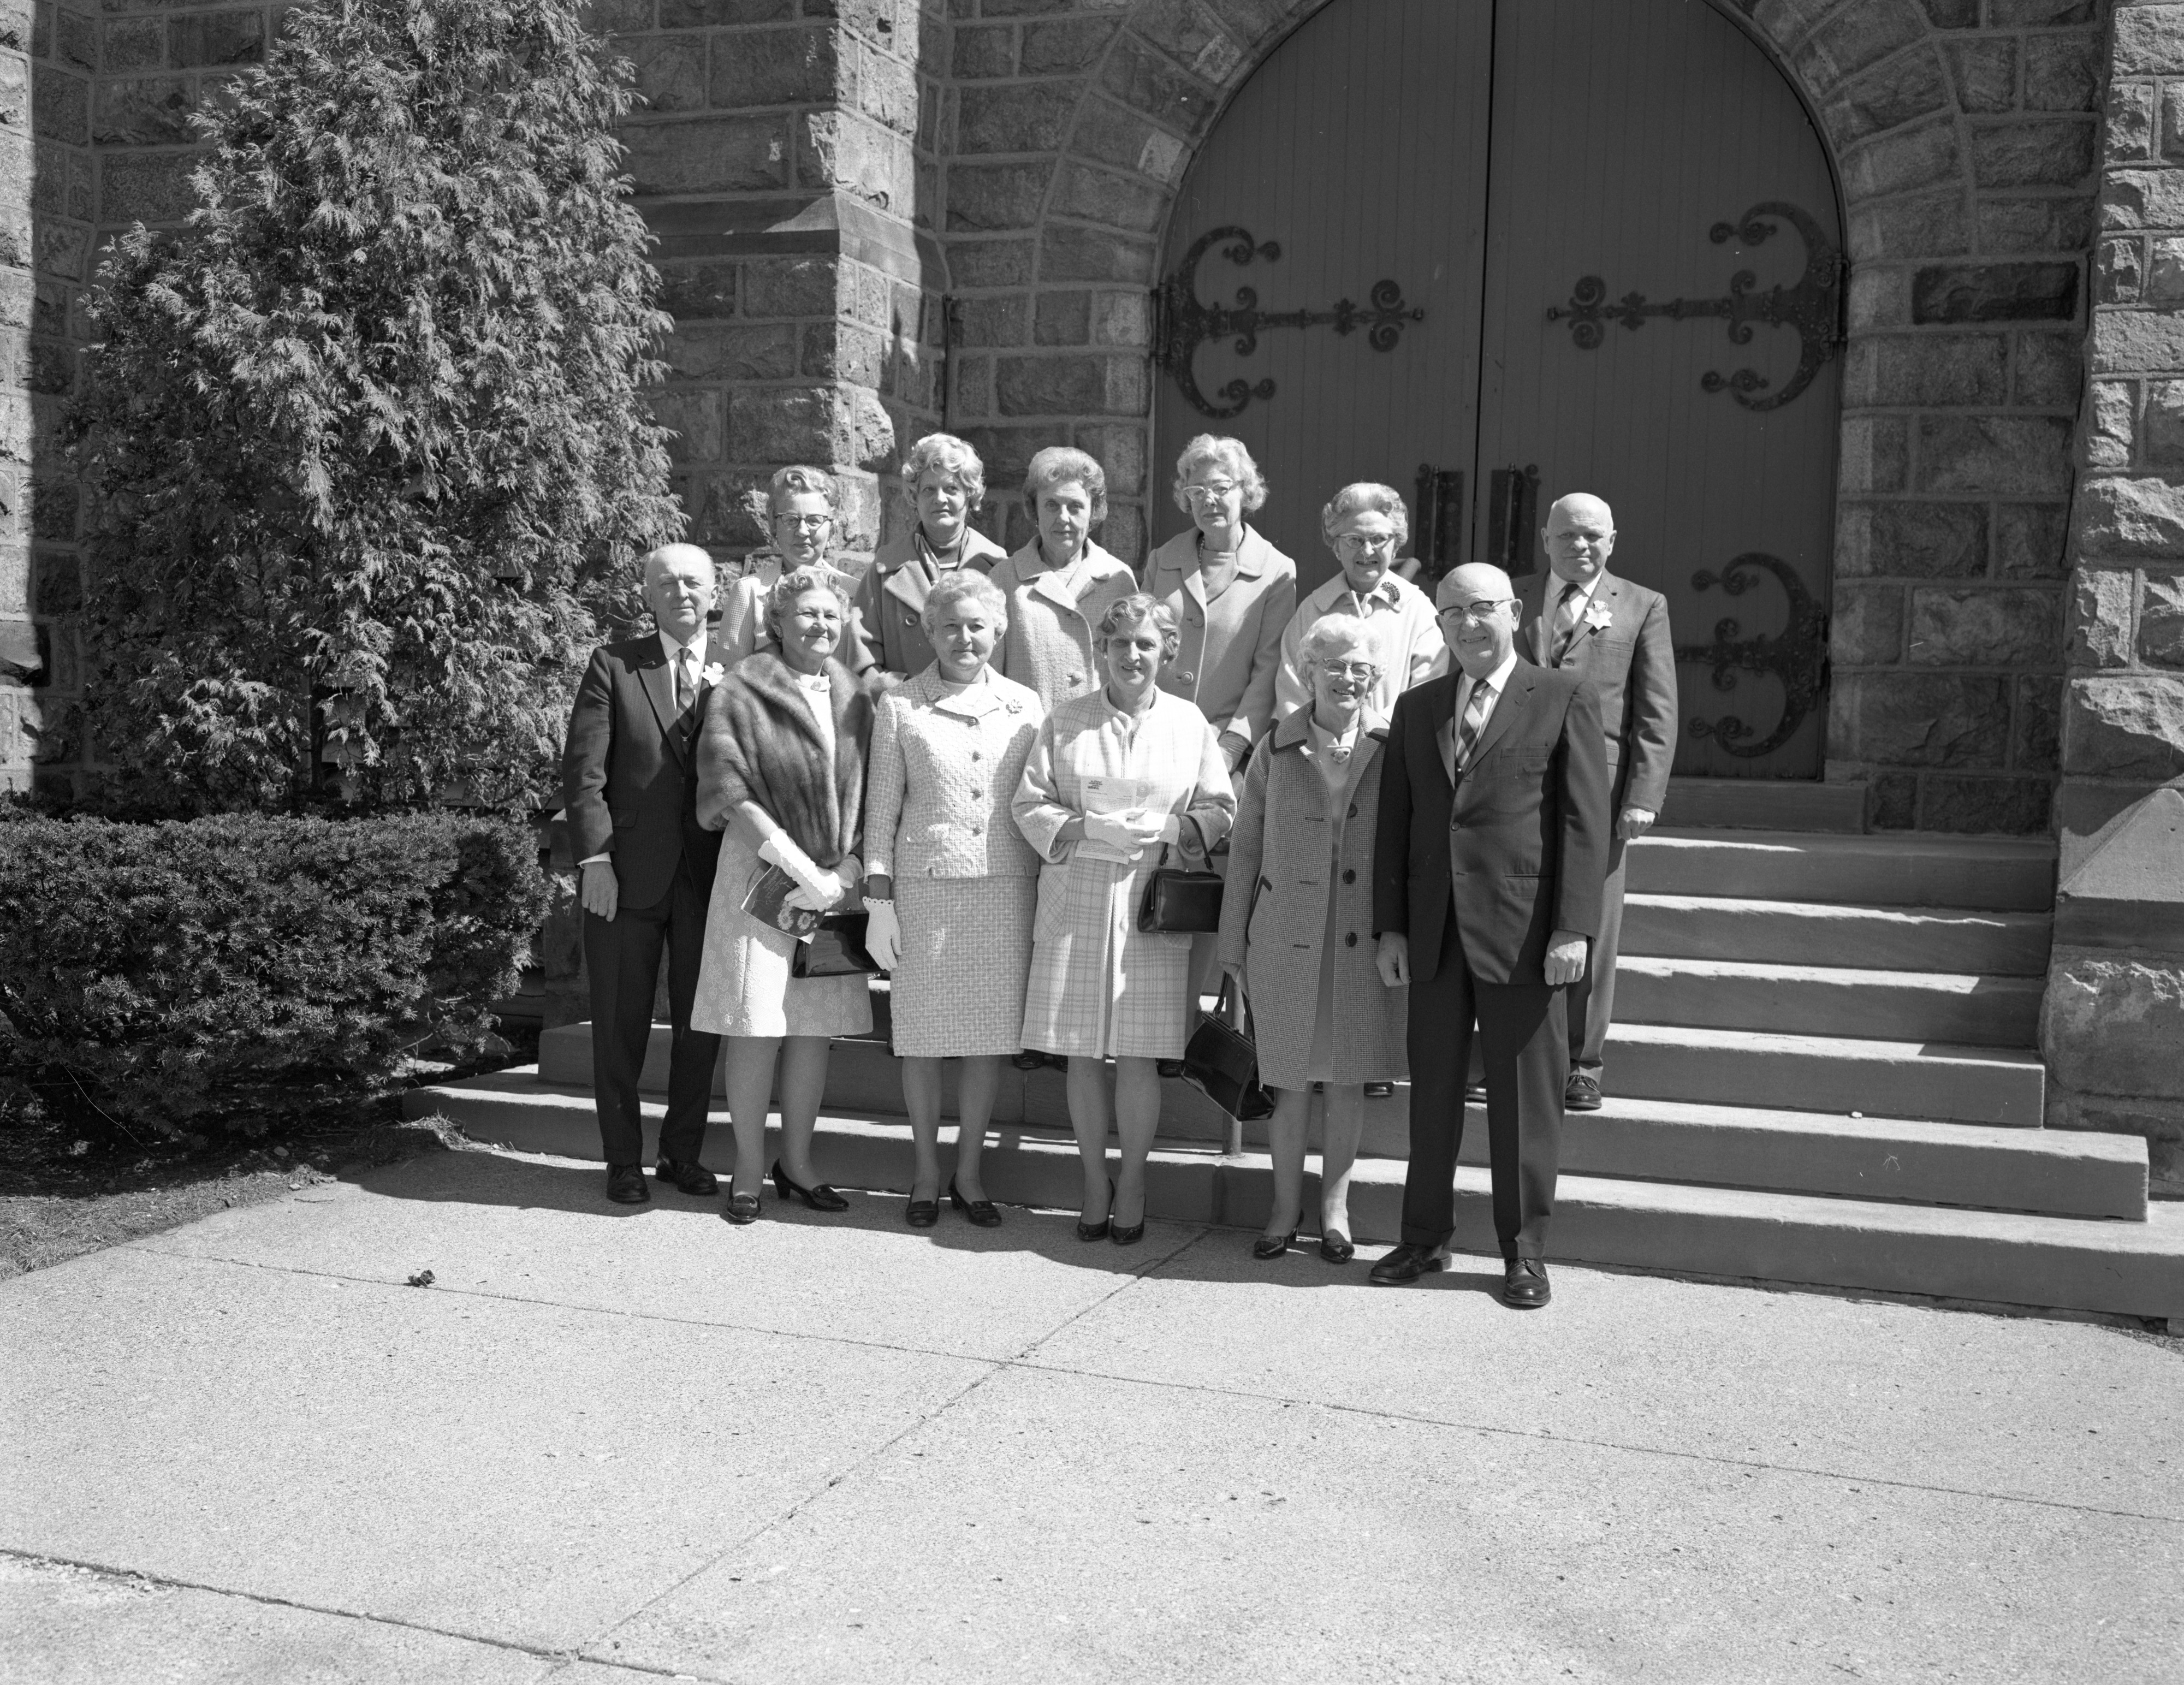 50 Year Reunion of Bethlehem Church's 1920 Confirmation Class, April 1970 image